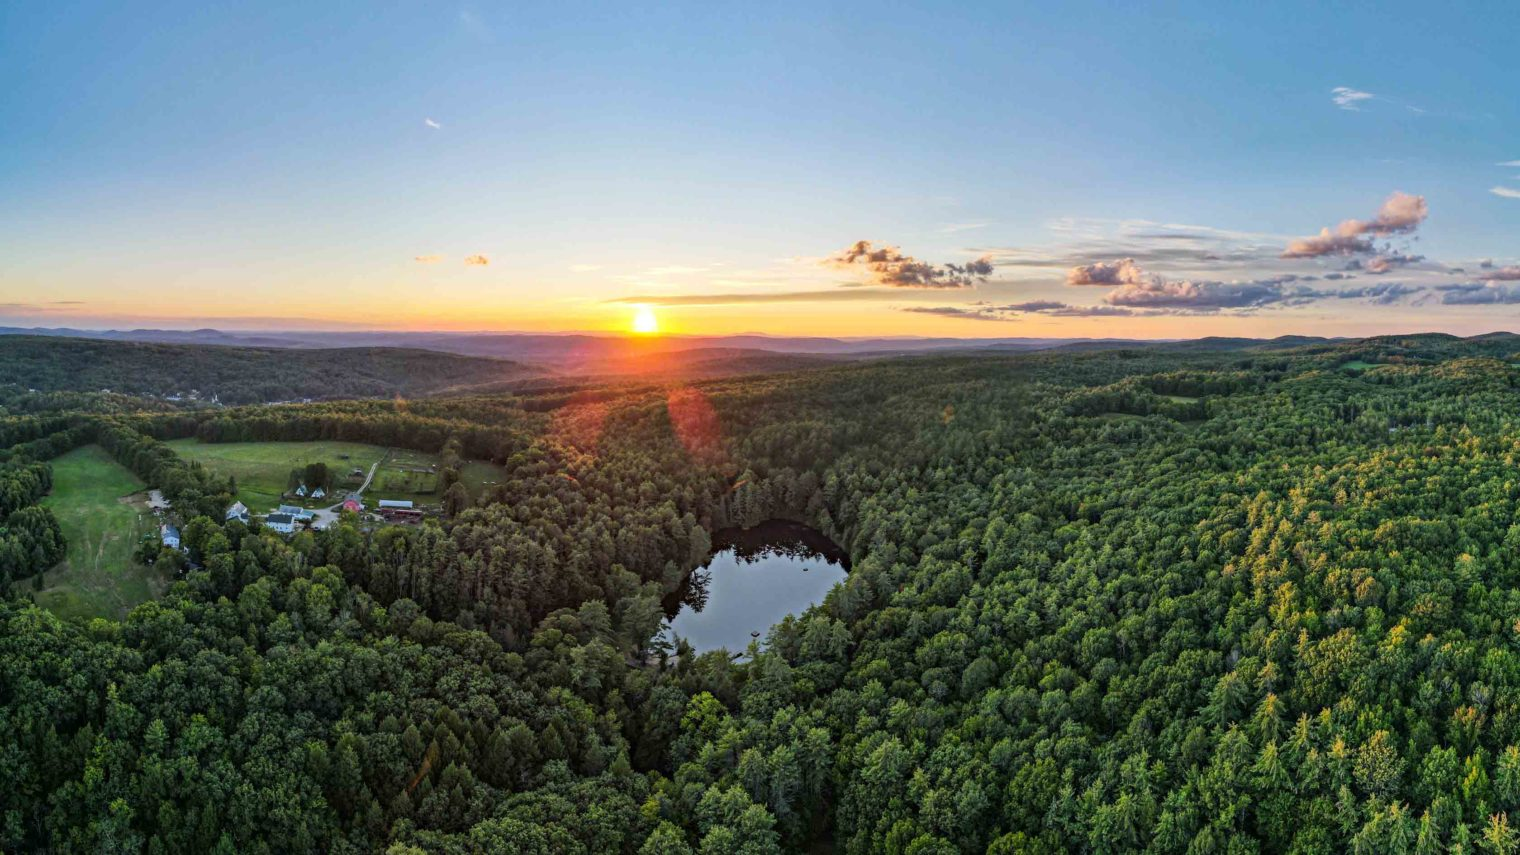 A sunset over the camp grounds and forest.